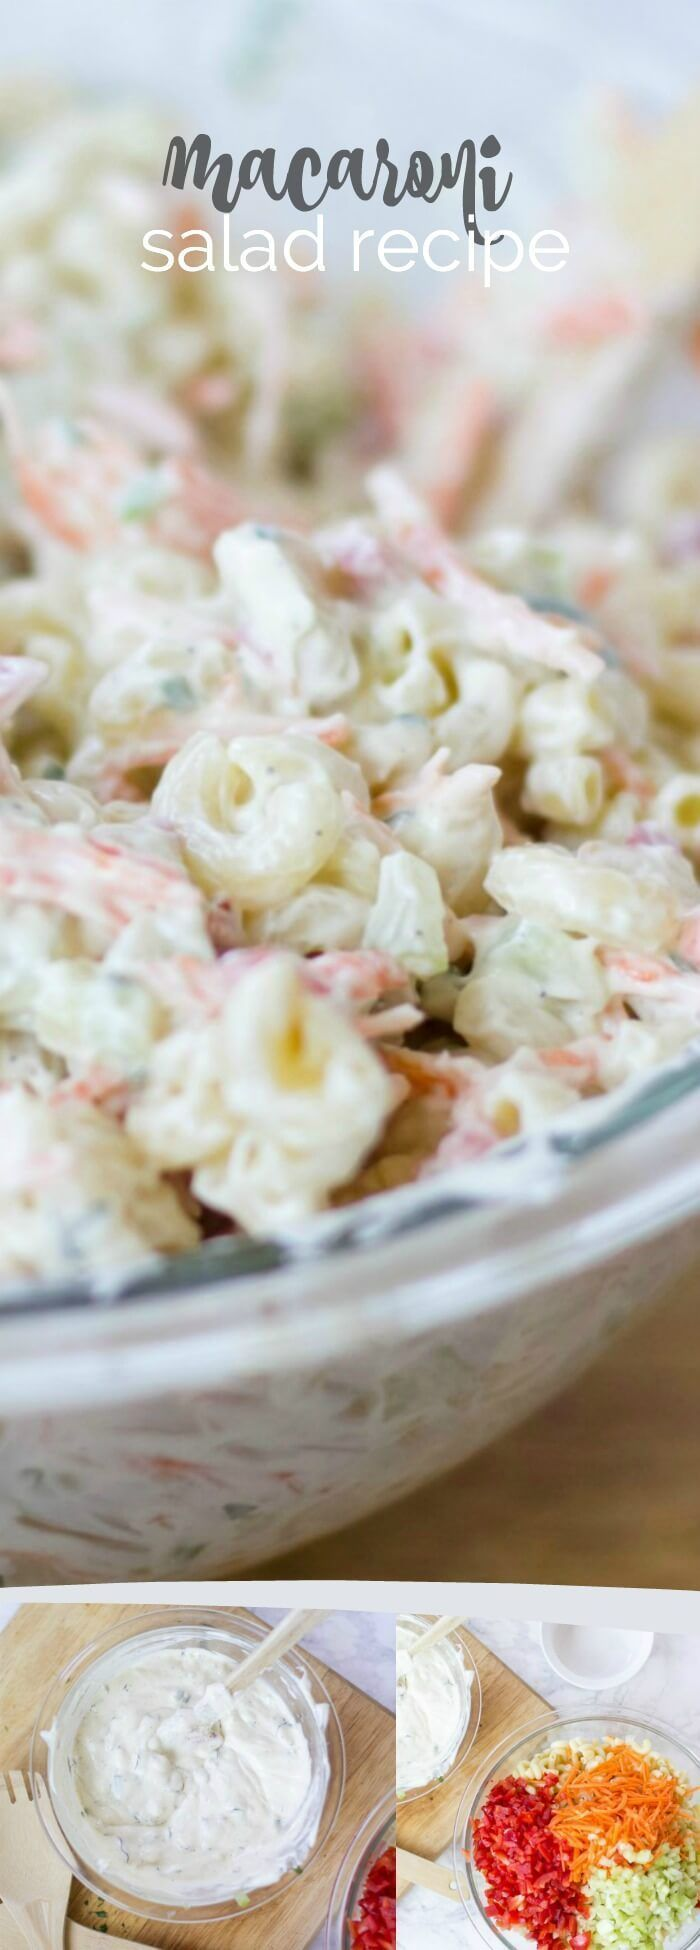 Elbow Macaroni Salad, Great Side Dish For Parties, Pin Now For Later!